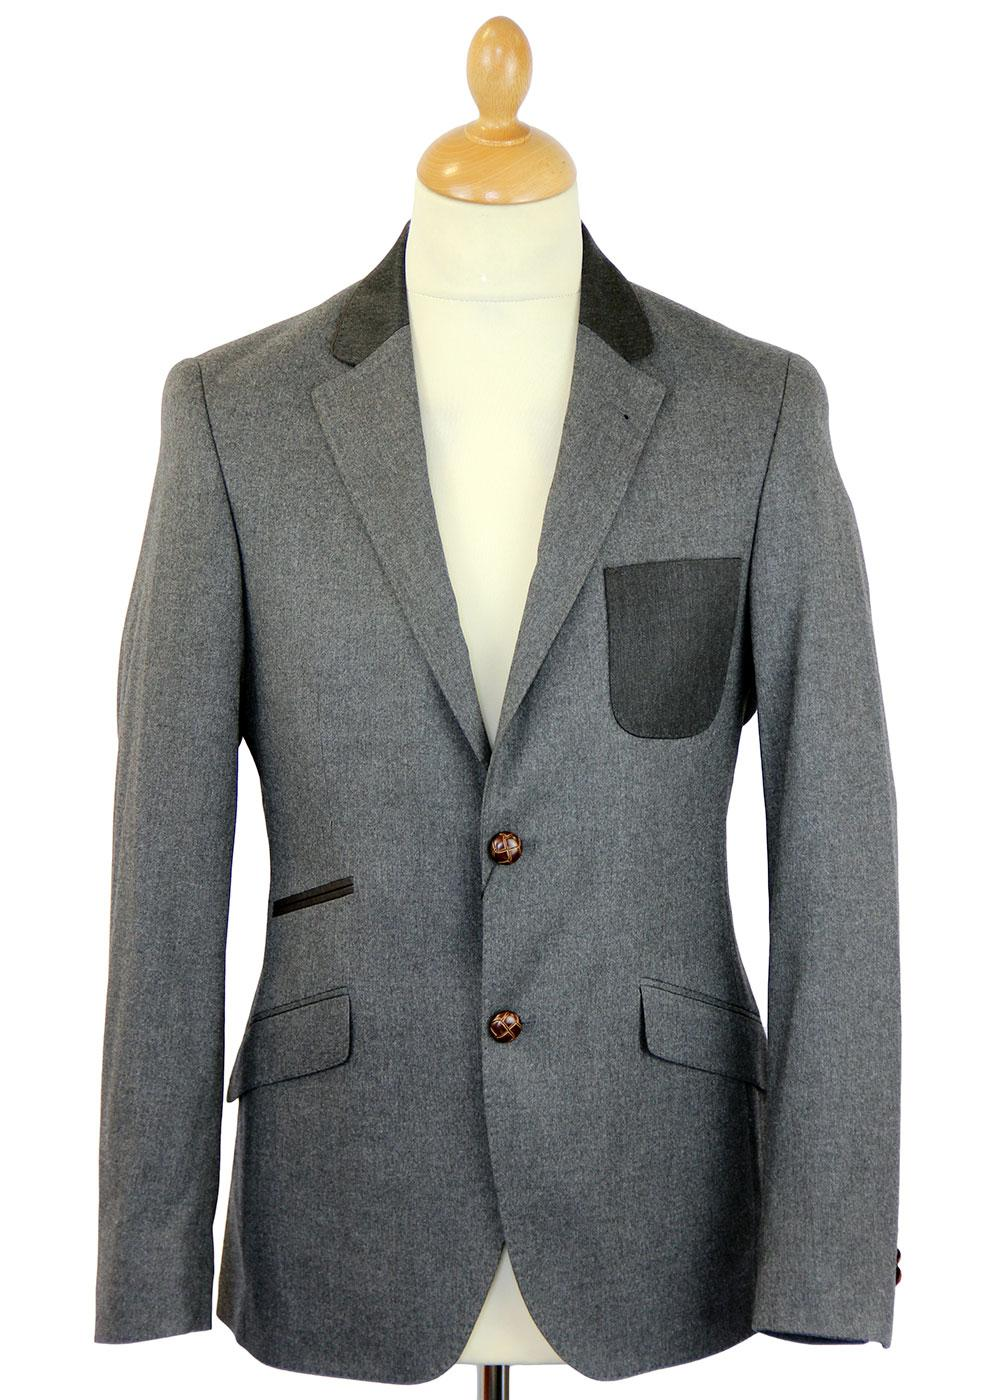 GUIDE LONDON Contrast Collar & Pocket Mod Blazer